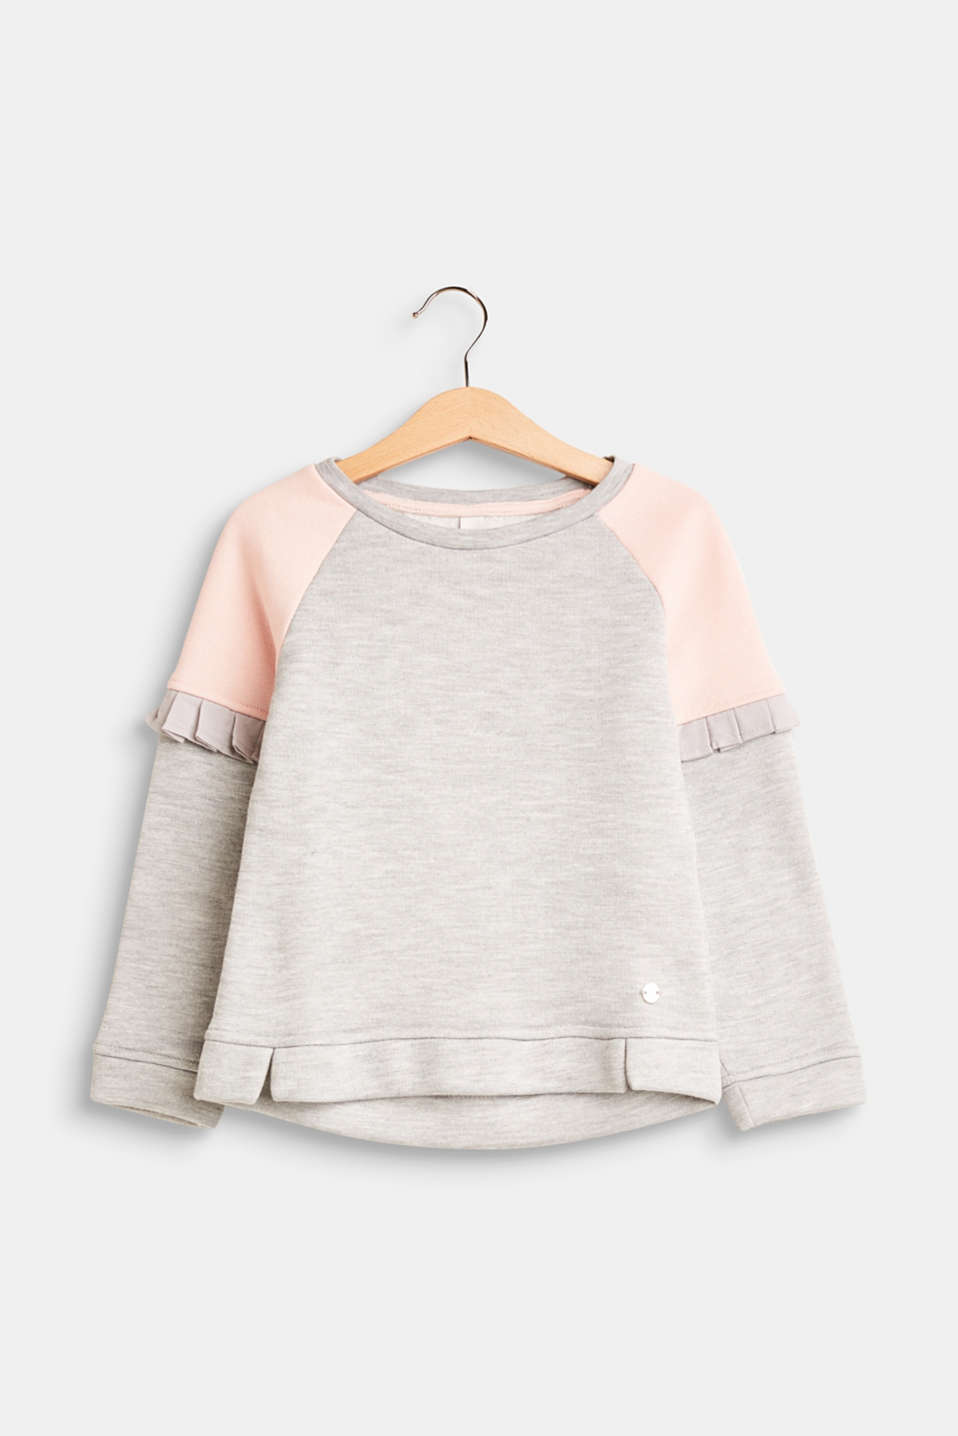 Esprit - Colour block sweatshirt with fabric frills